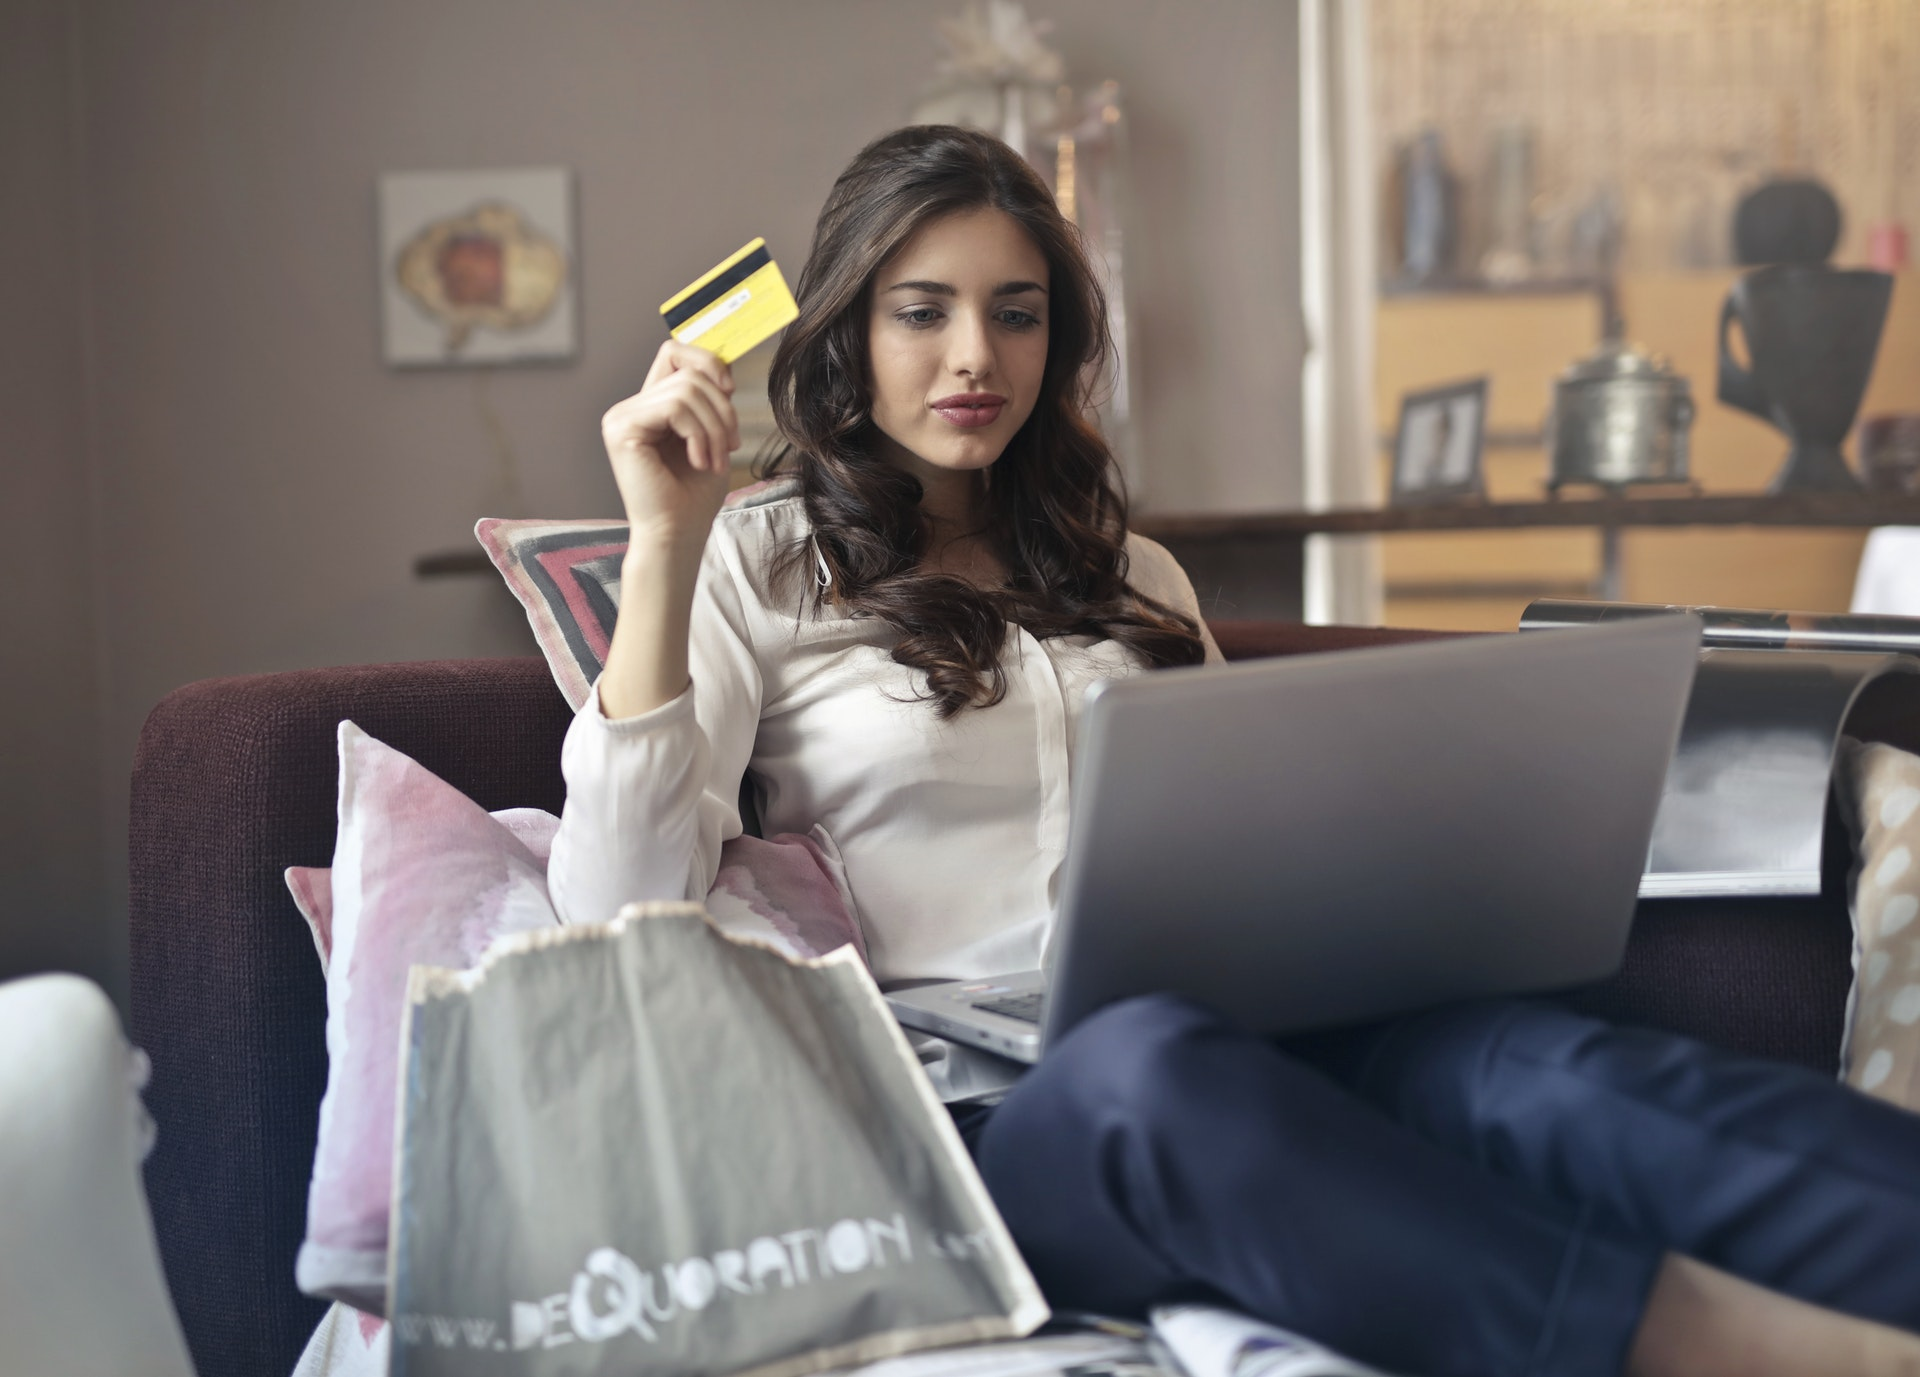 Woman online purchasing